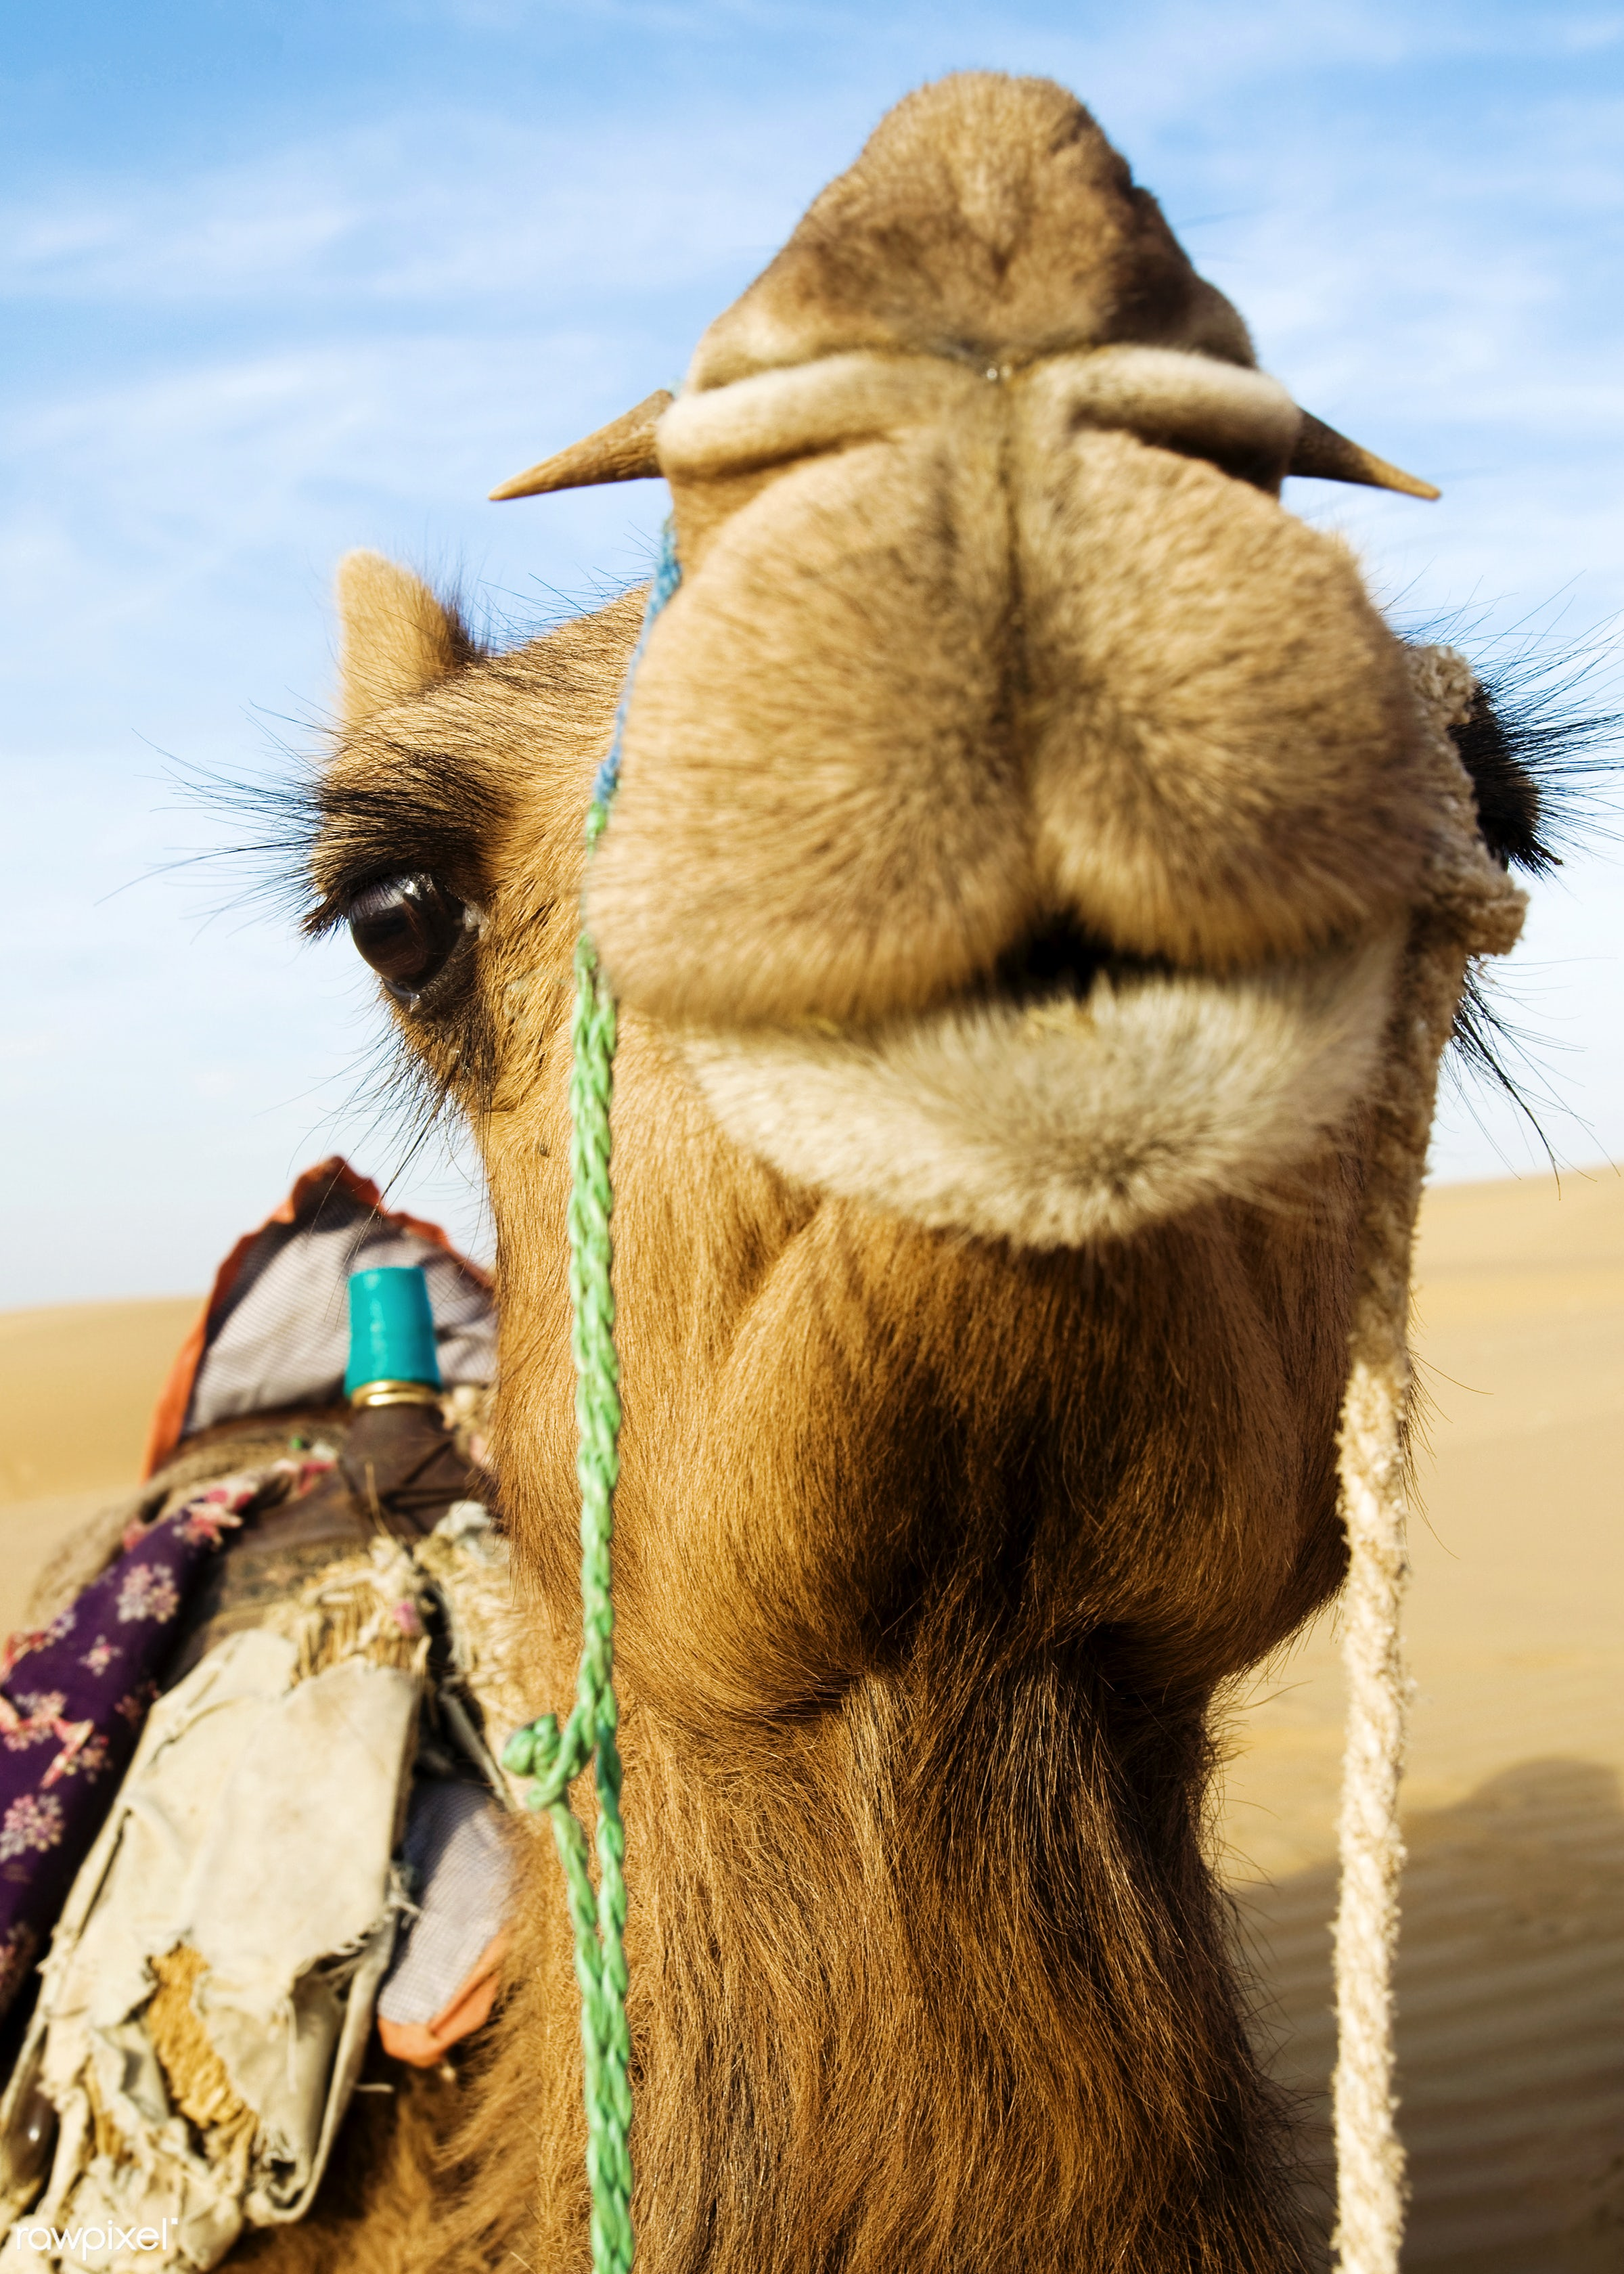 Johnie the Camel in the Thar Desert, Rajasthan, India - ancient, animal, animal themes, arabia, blue, camel, carved letters...